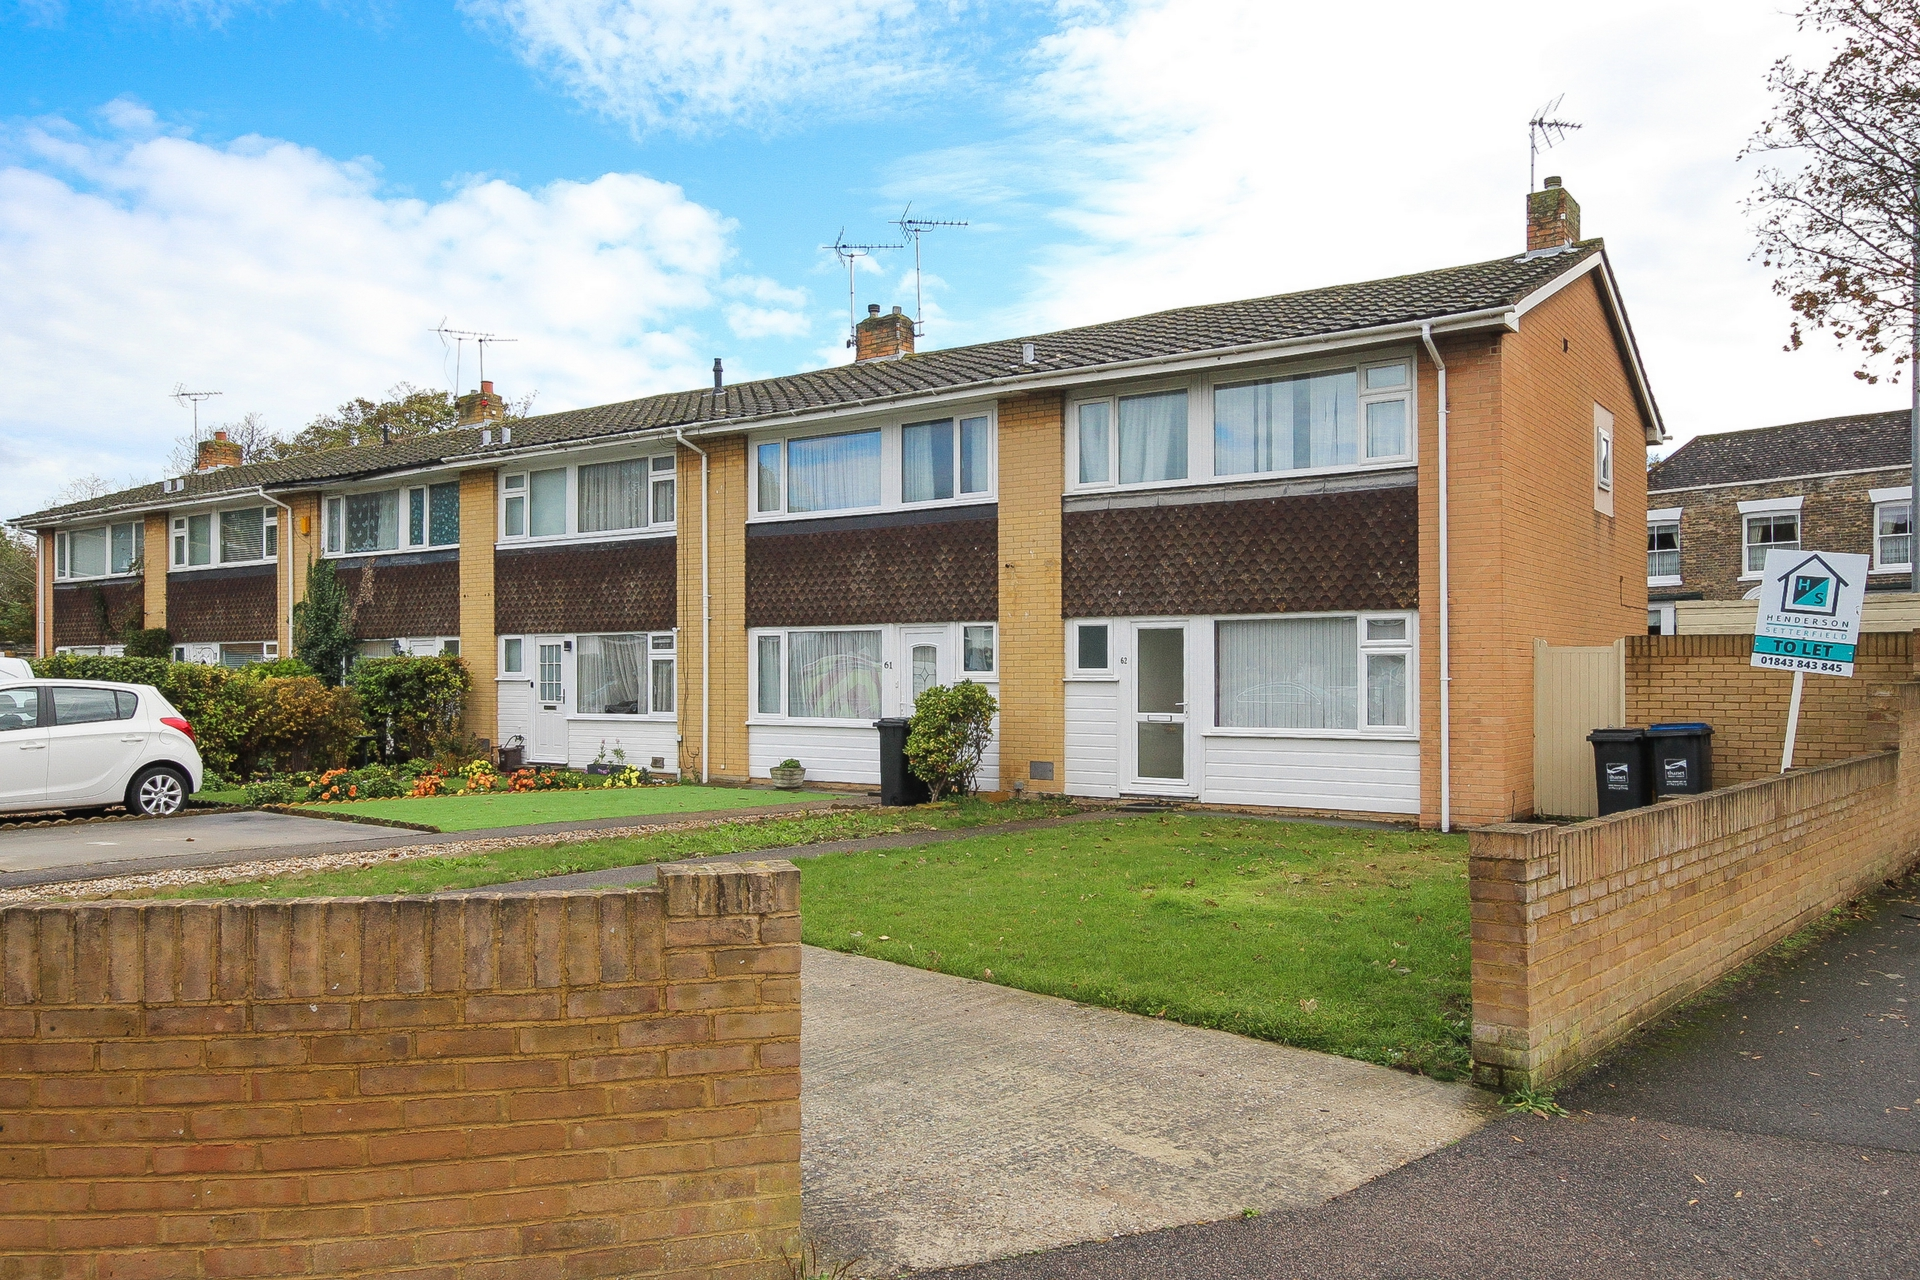 3 bed house to rent in Yew Tree Gardens, Birchington, CT7  - Property Image 2